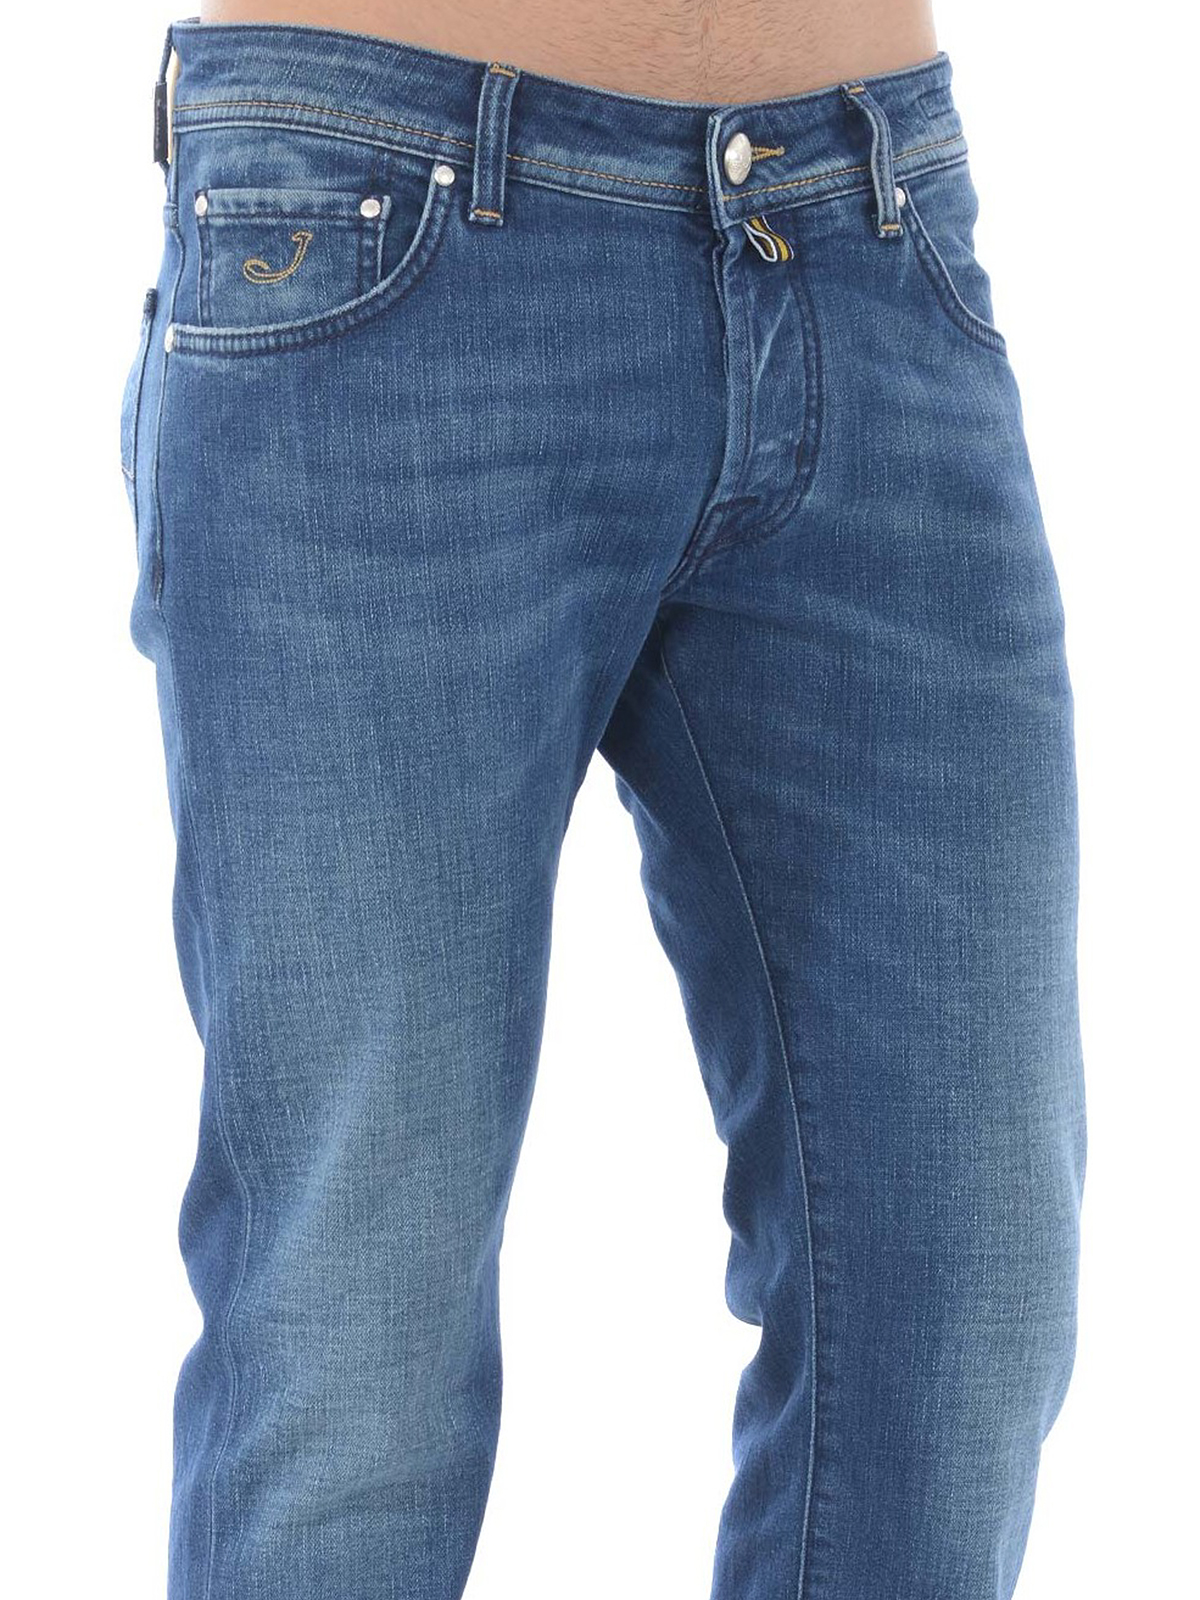 2a350de1c82e99 Jacob Cohen - J622 Comfort stone wash denim jeans - straight leg ...